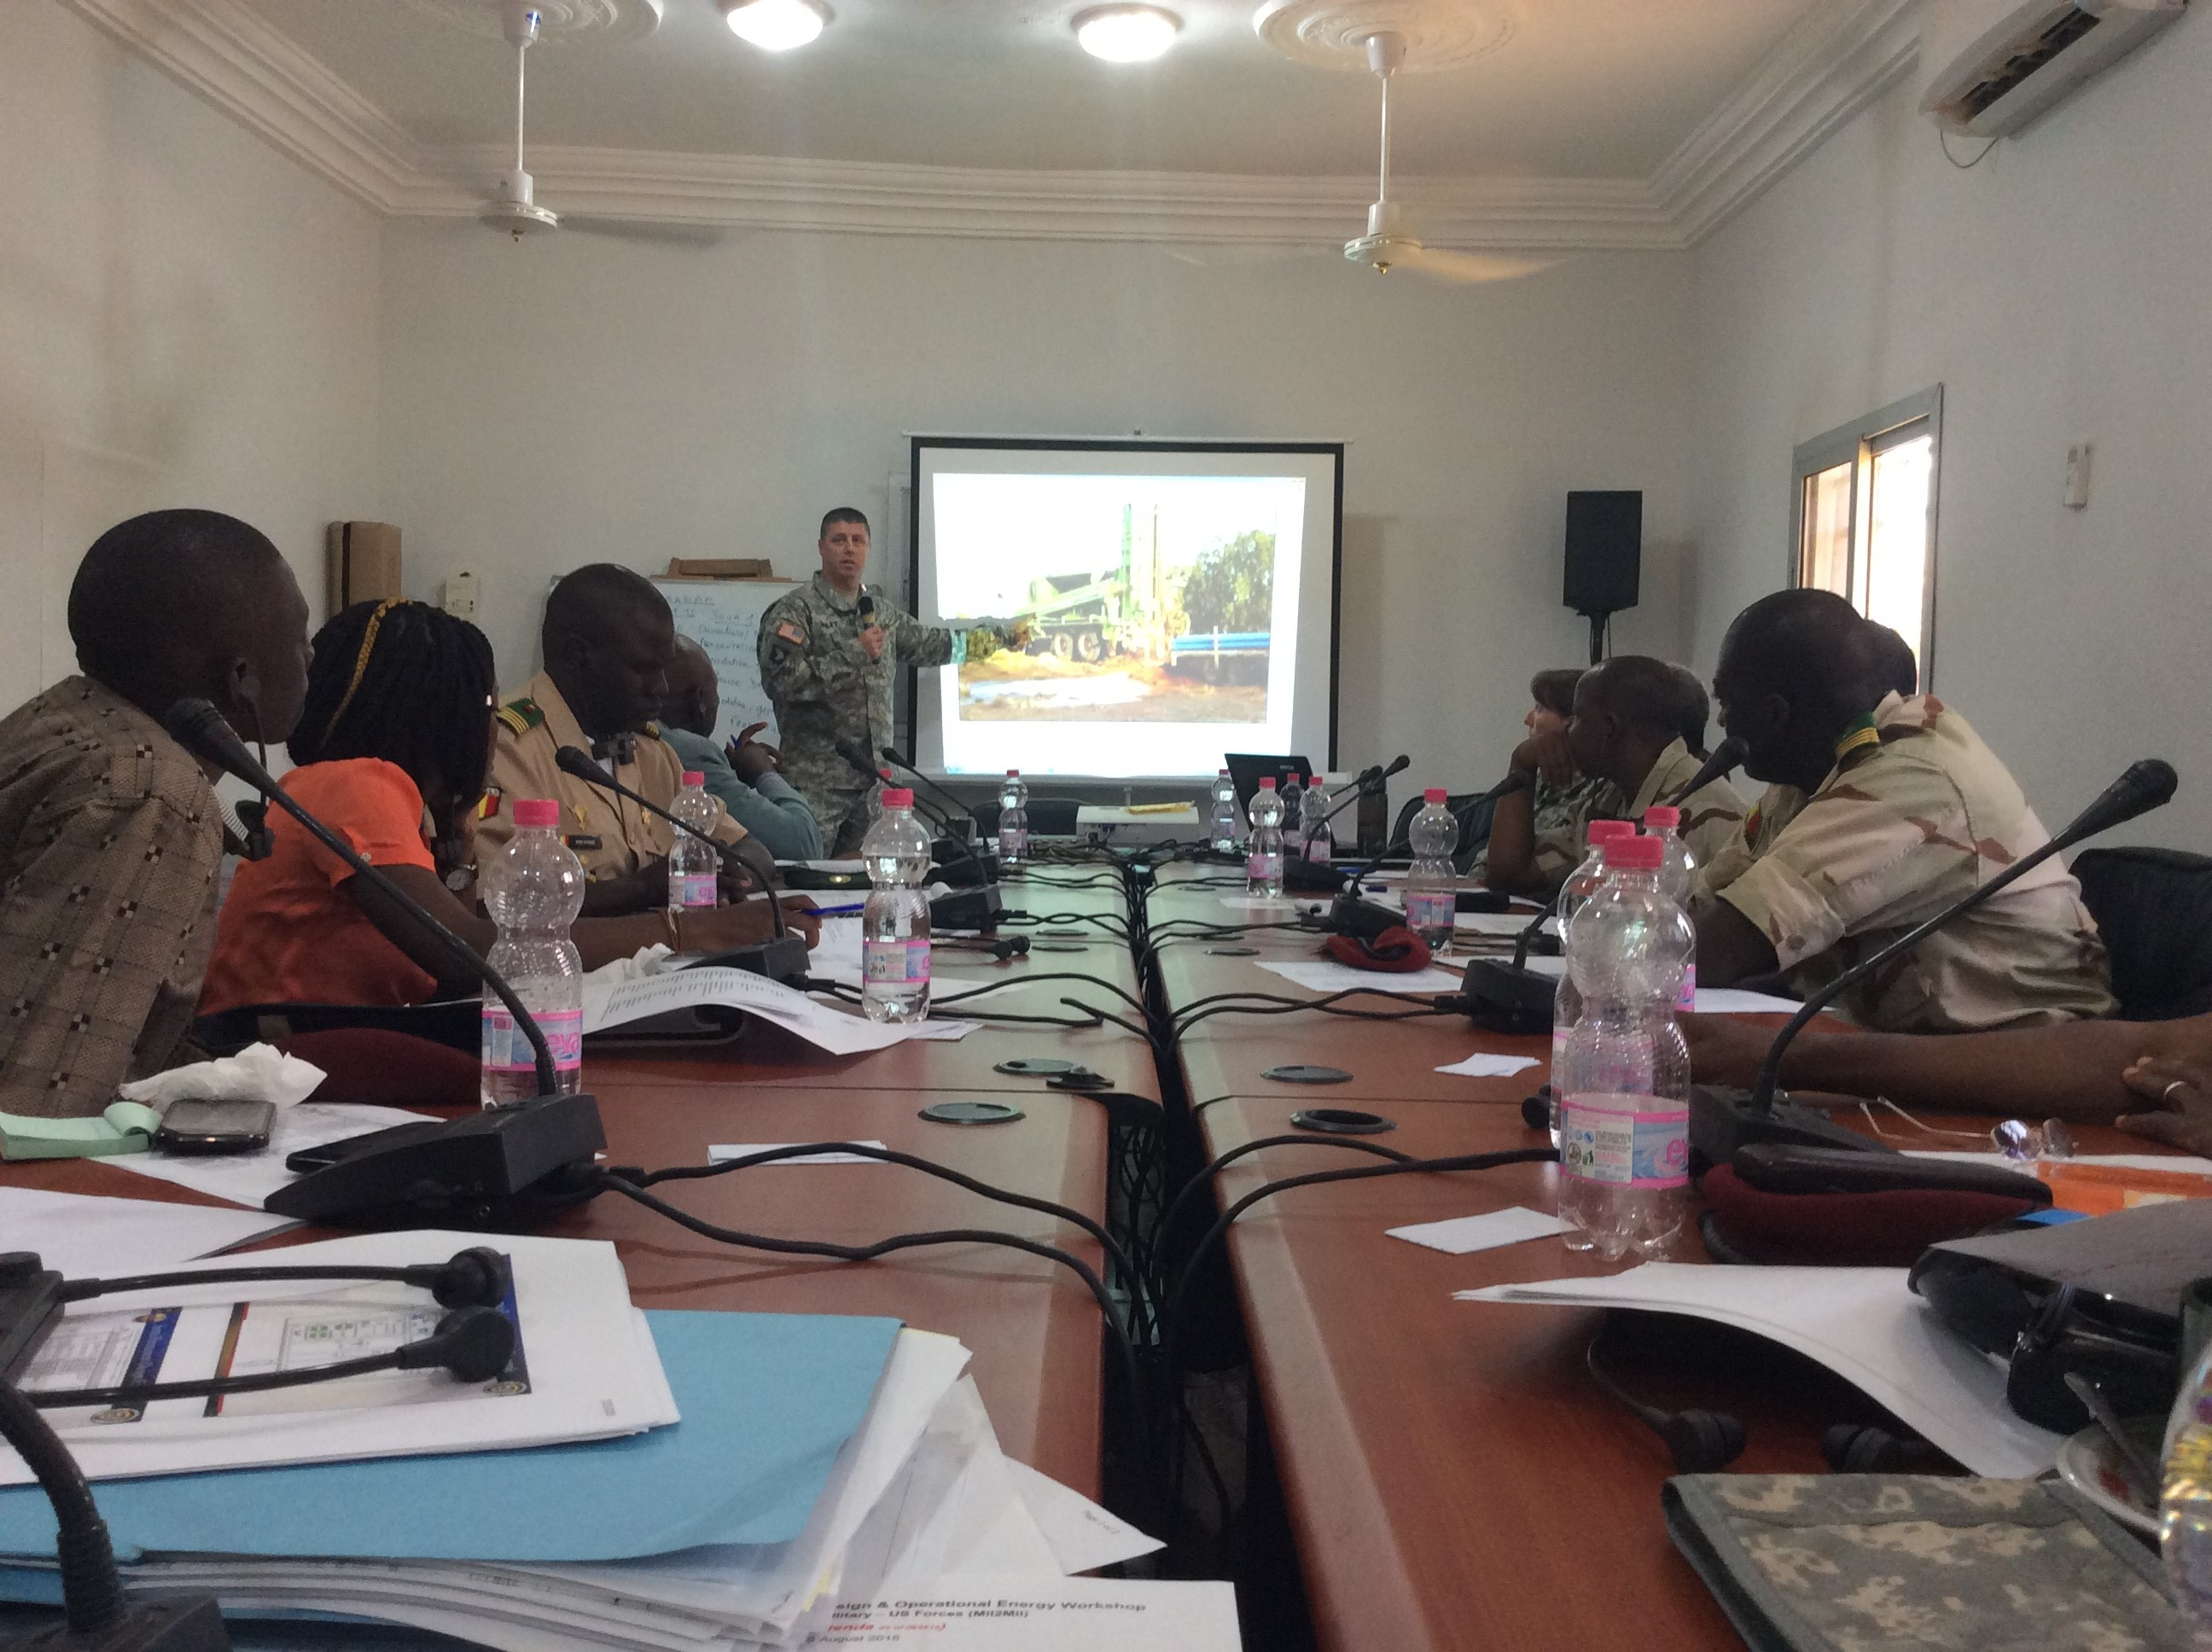 BAMAKO, Mali - Lt. Col. Robert Hailey, USACE Liaison to AFRICOM, leads a discussion on base camp water management during the Mali Military Base Design and Operational Energy Workshop.